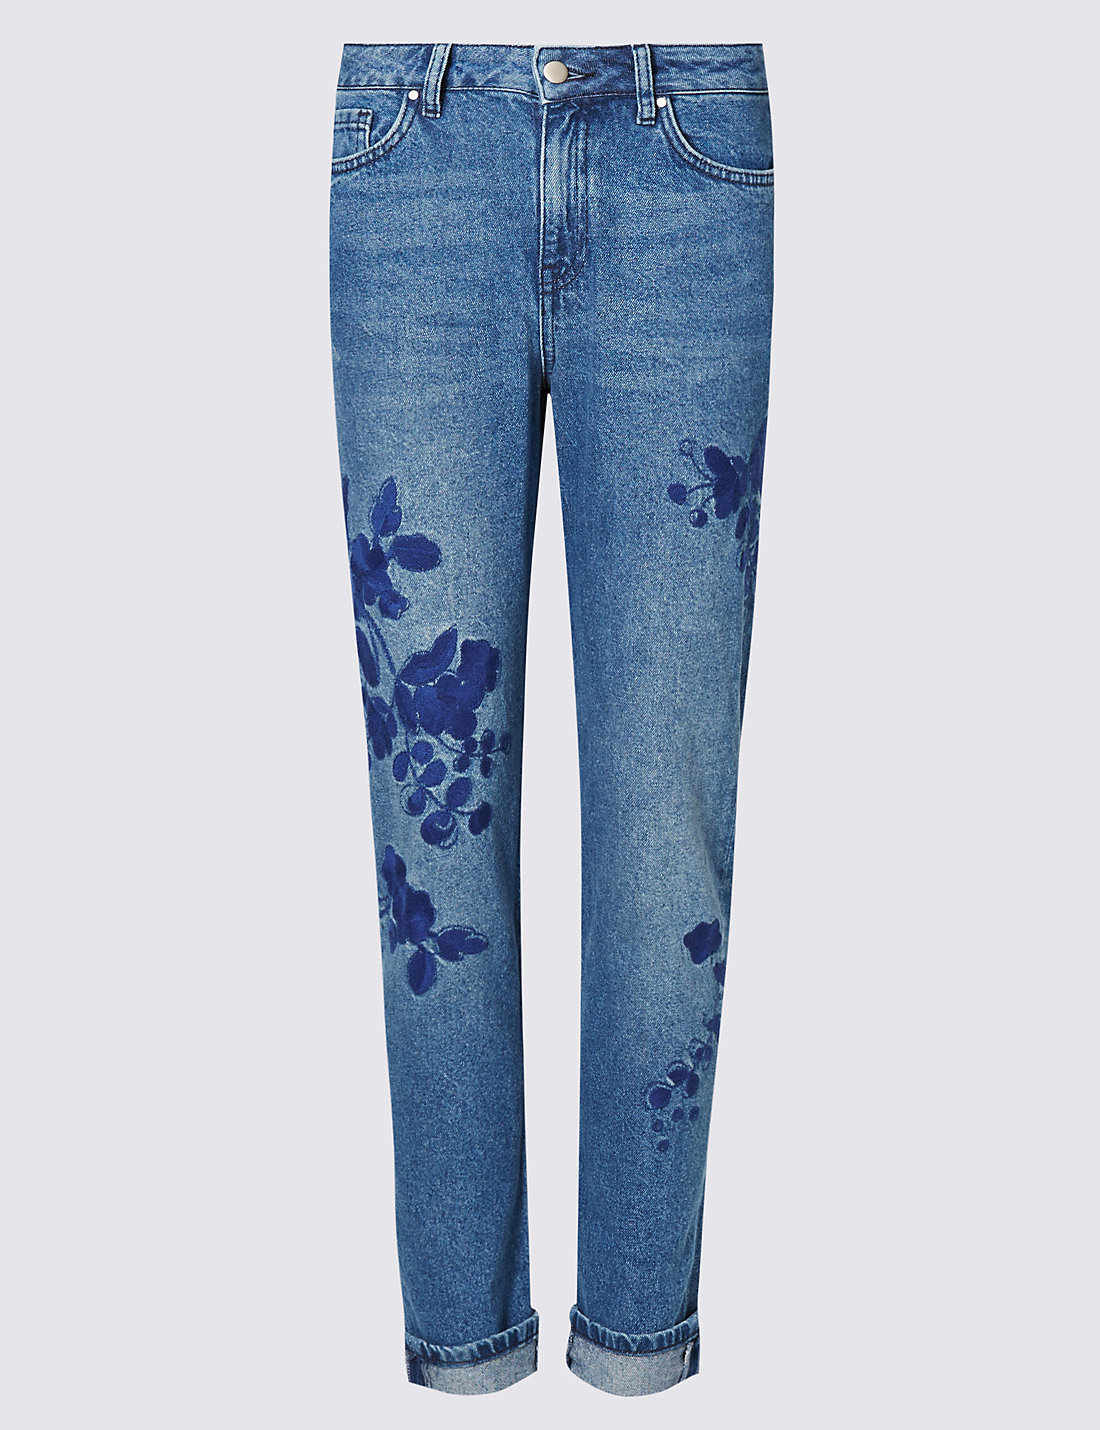 M&S EMbroidered Jeans.jpeg